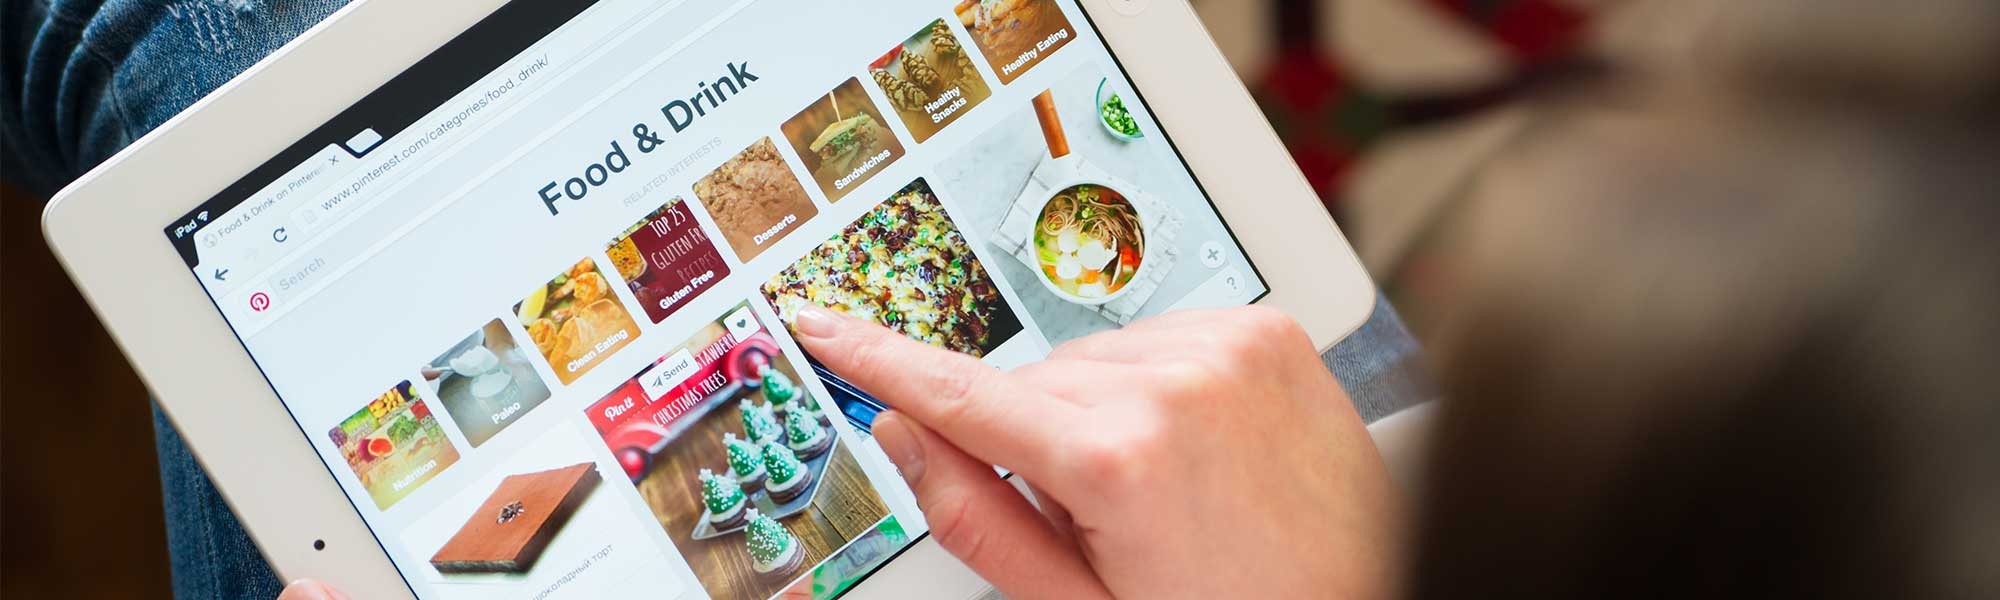 Pinterest Features That Brands Should Incorporate into Marketing Strategies